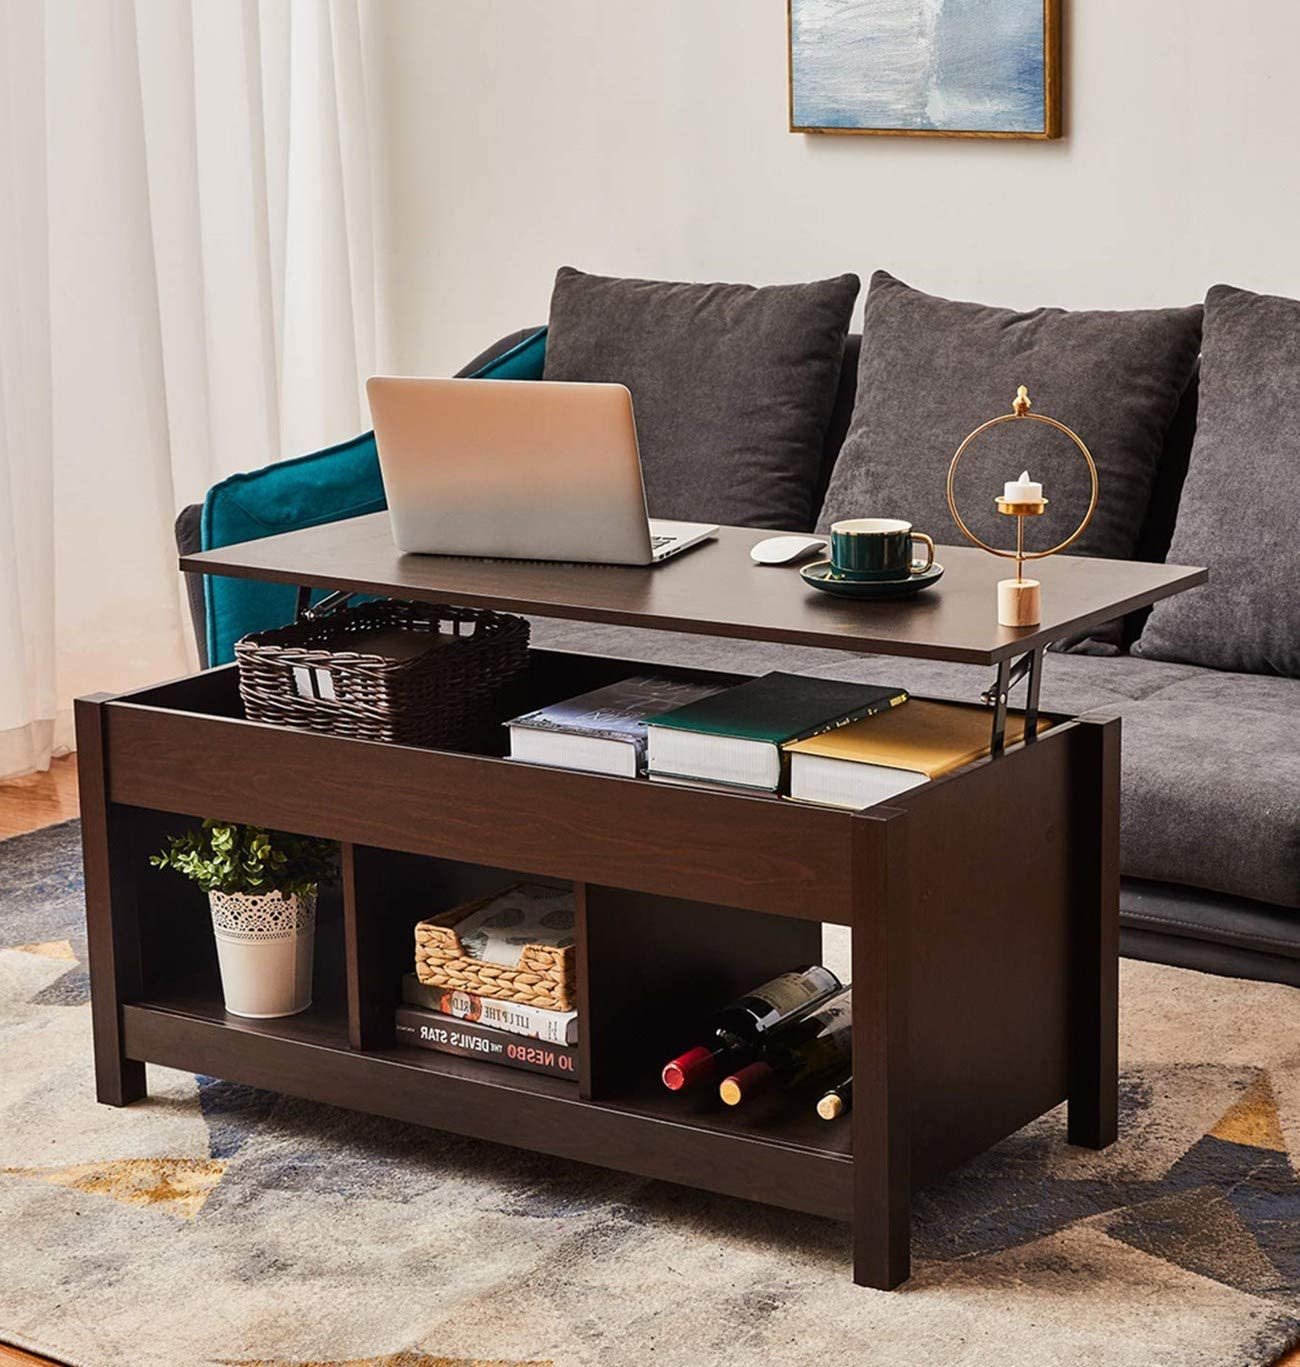 Modern Lift Top Coffee Table with Hidden Compartment and Storage Shelf, Storage Shelves Pop-Up Storage Cocktail Table Dining Table for Living Room Furniture Brown